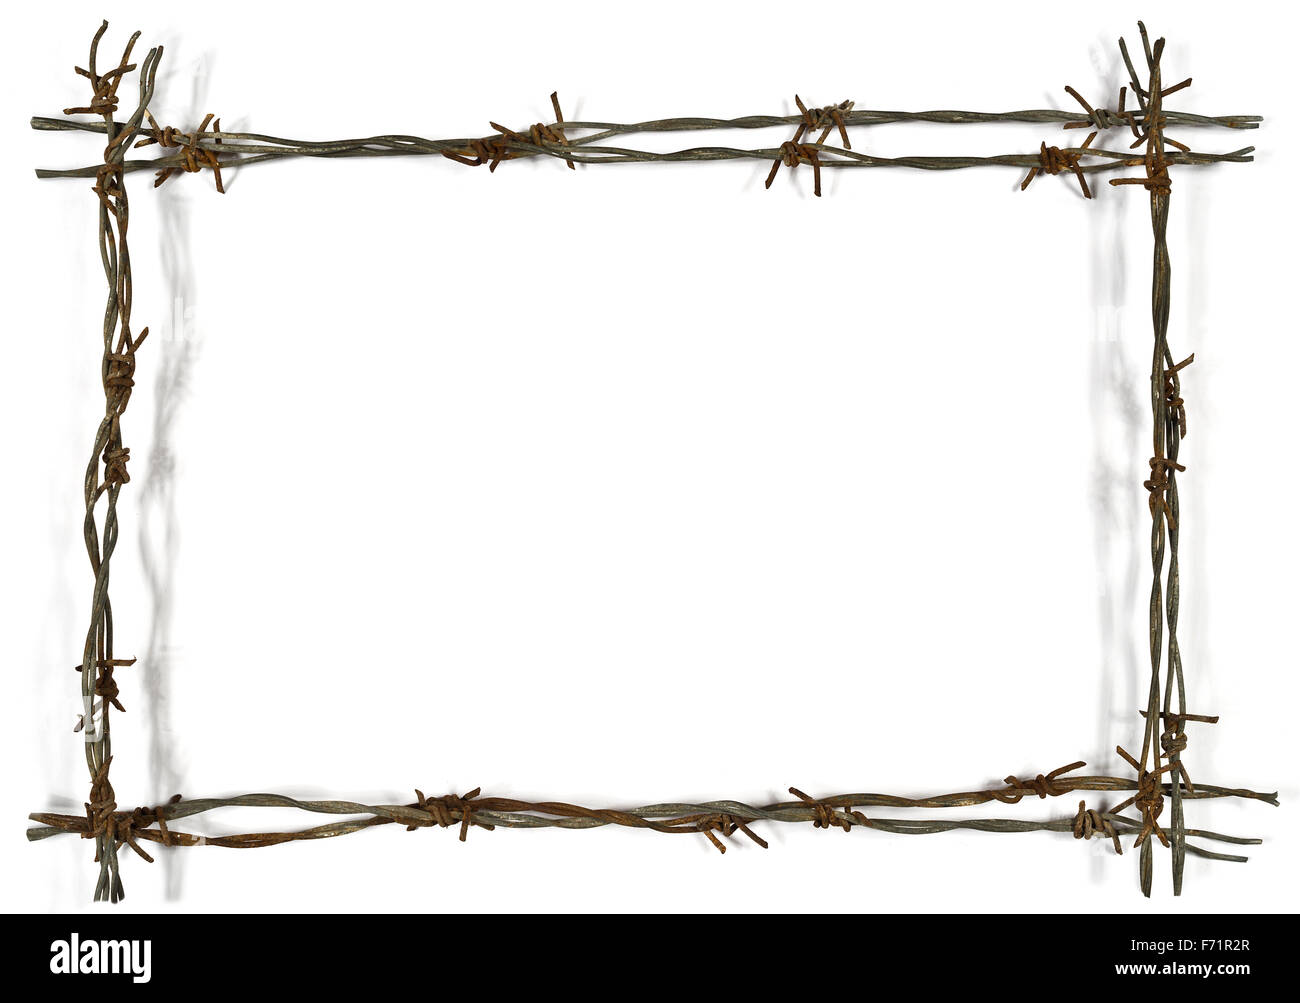 Barbed Wire Knot Stock Photos & Barbed Wire Knot Stock Images - Alamy